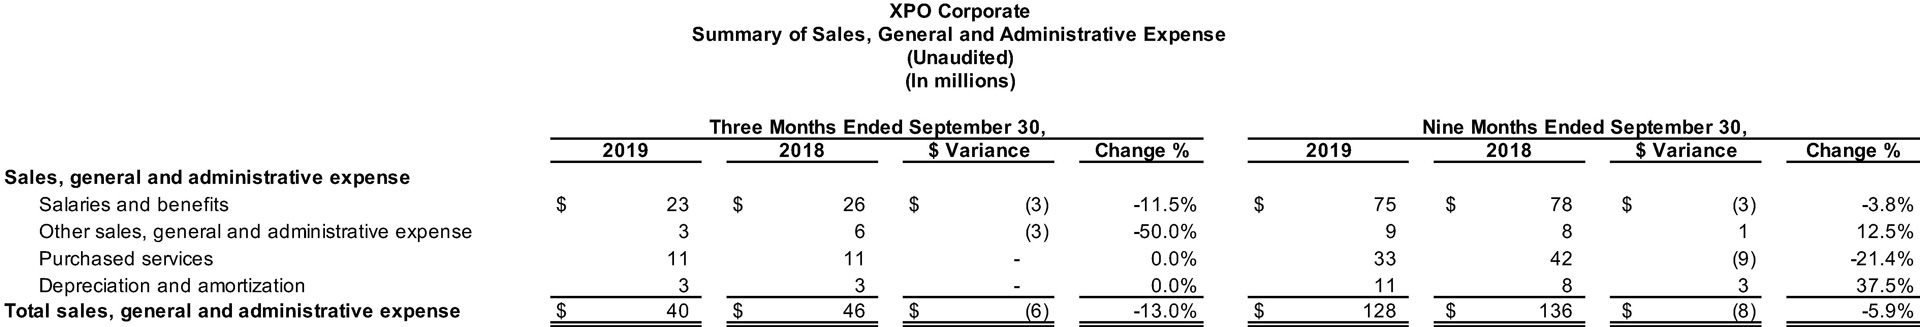 Corporate: Summary of Sales, General and Administrative Expense